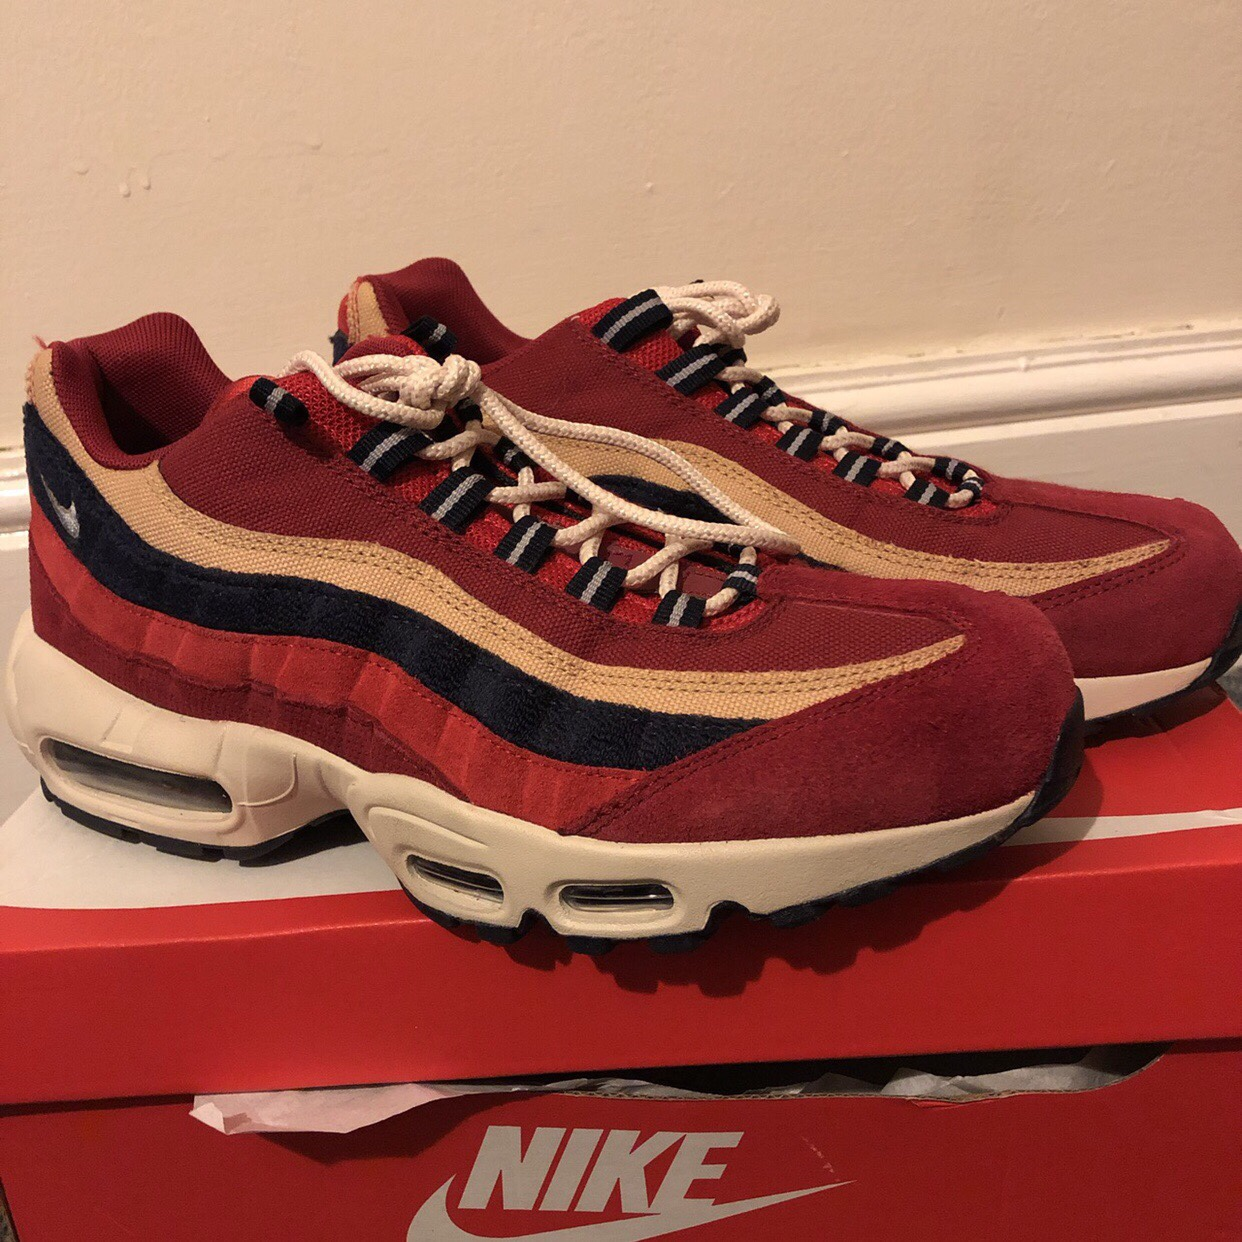 Nike air max 95 red crush limited edition Worn 2 3 Depop